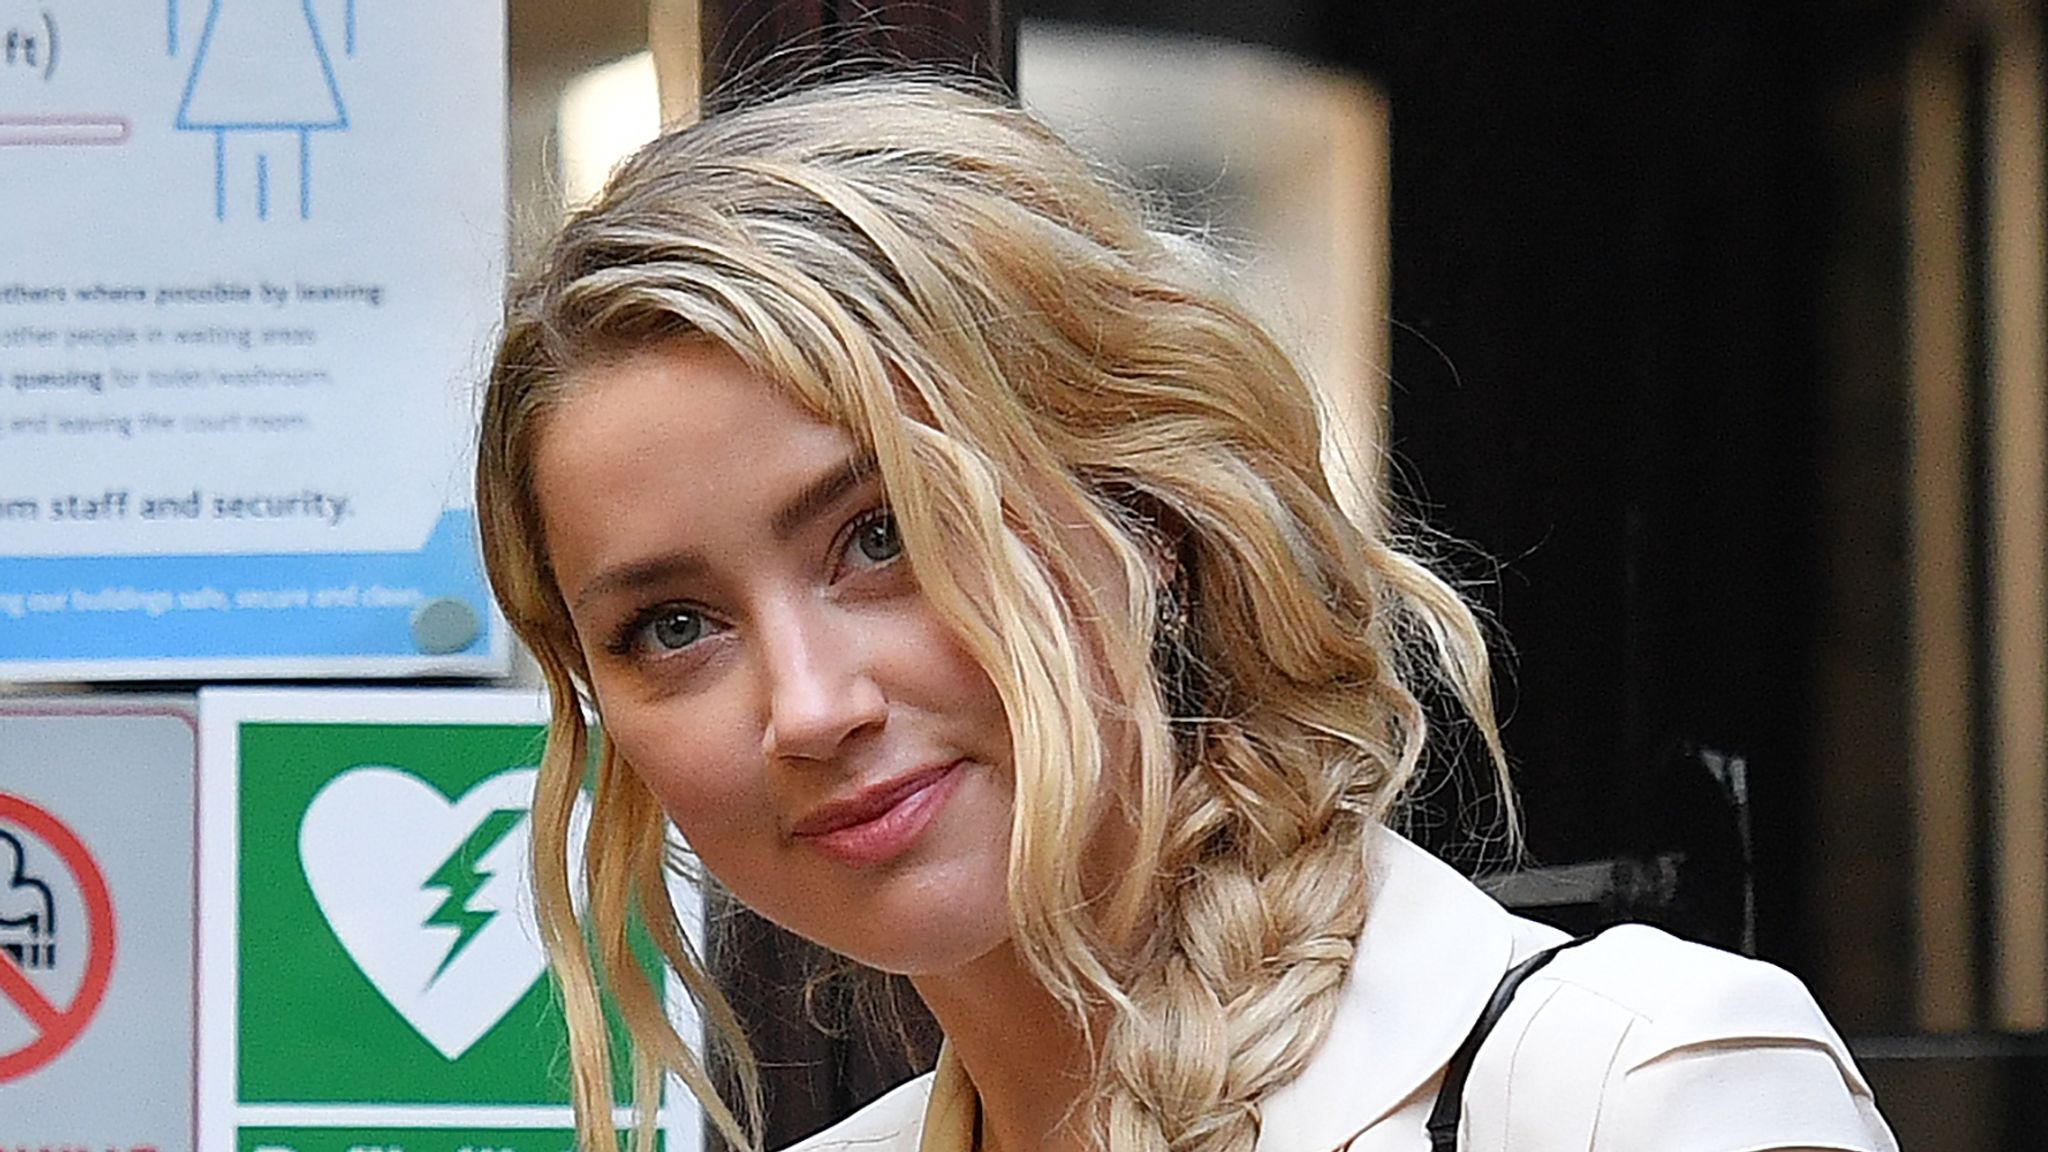 Star witness Amber Heard arrives at the High Court, where she is due to give evidence today